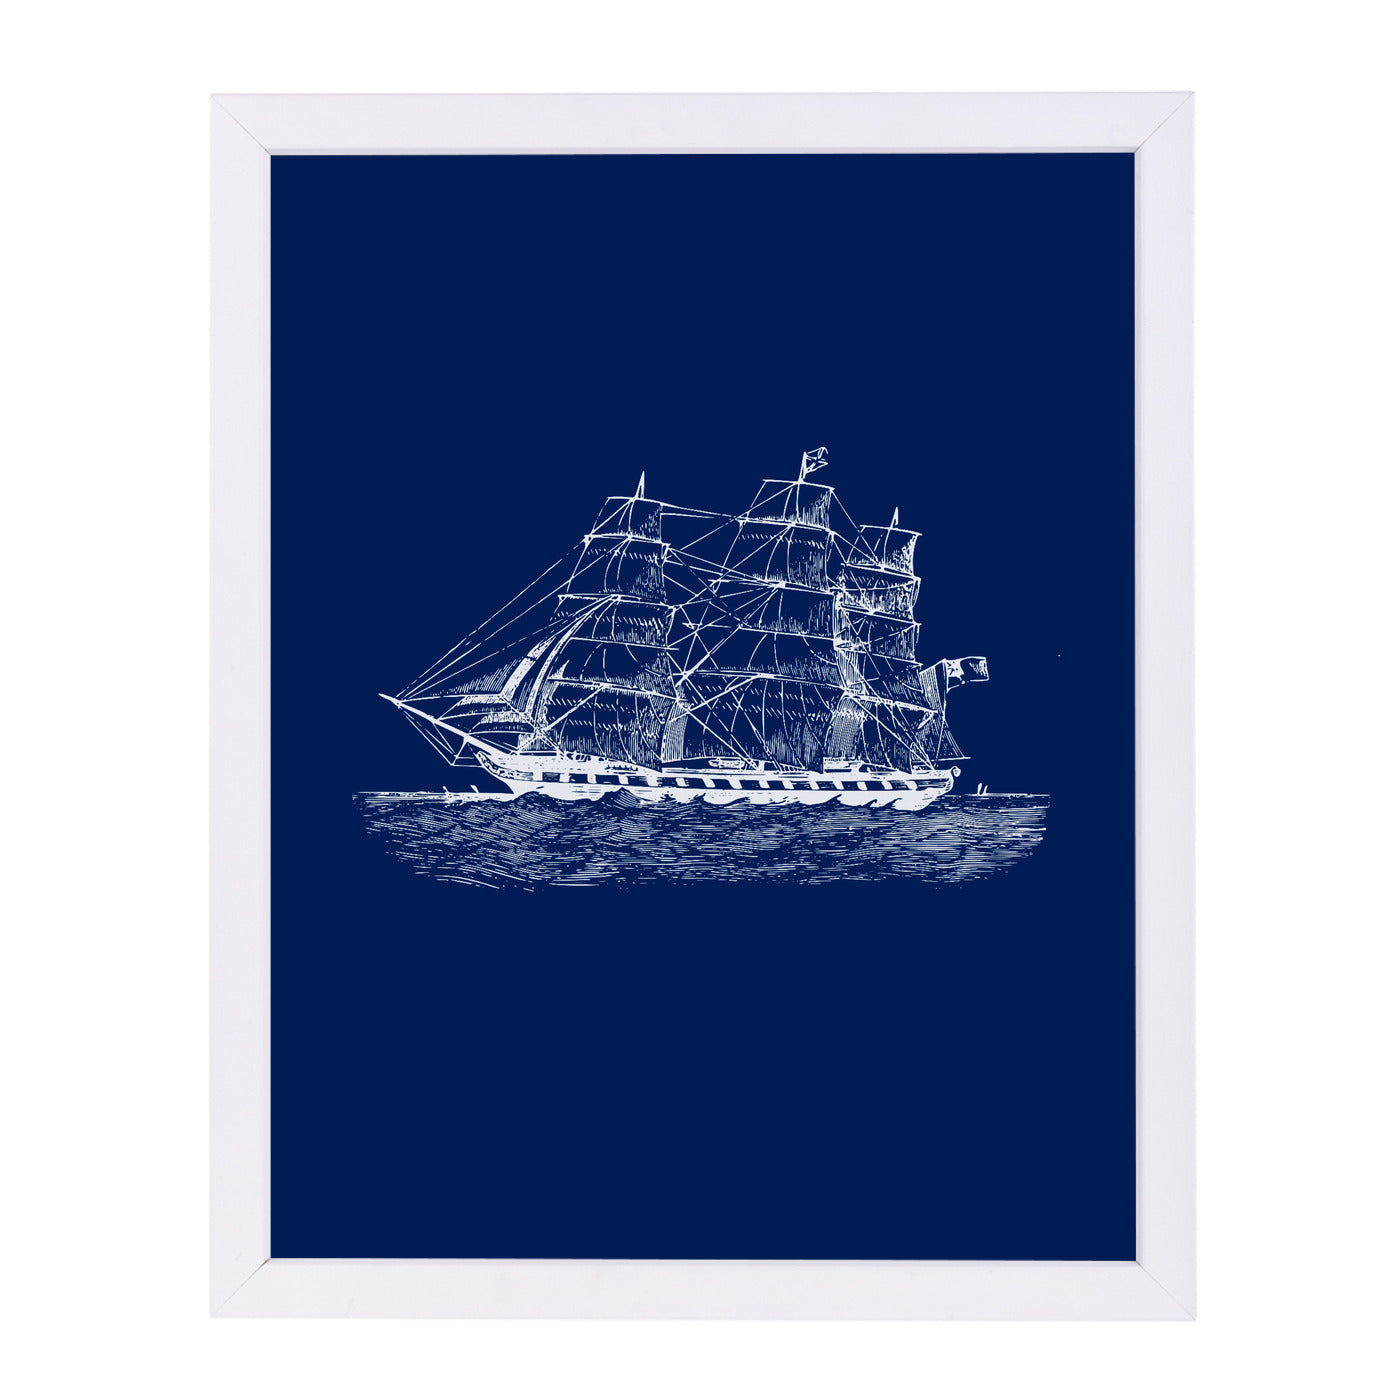 Nautical Equipment 3 Navy by Samantha Ranlet Framed Print - Americanflat